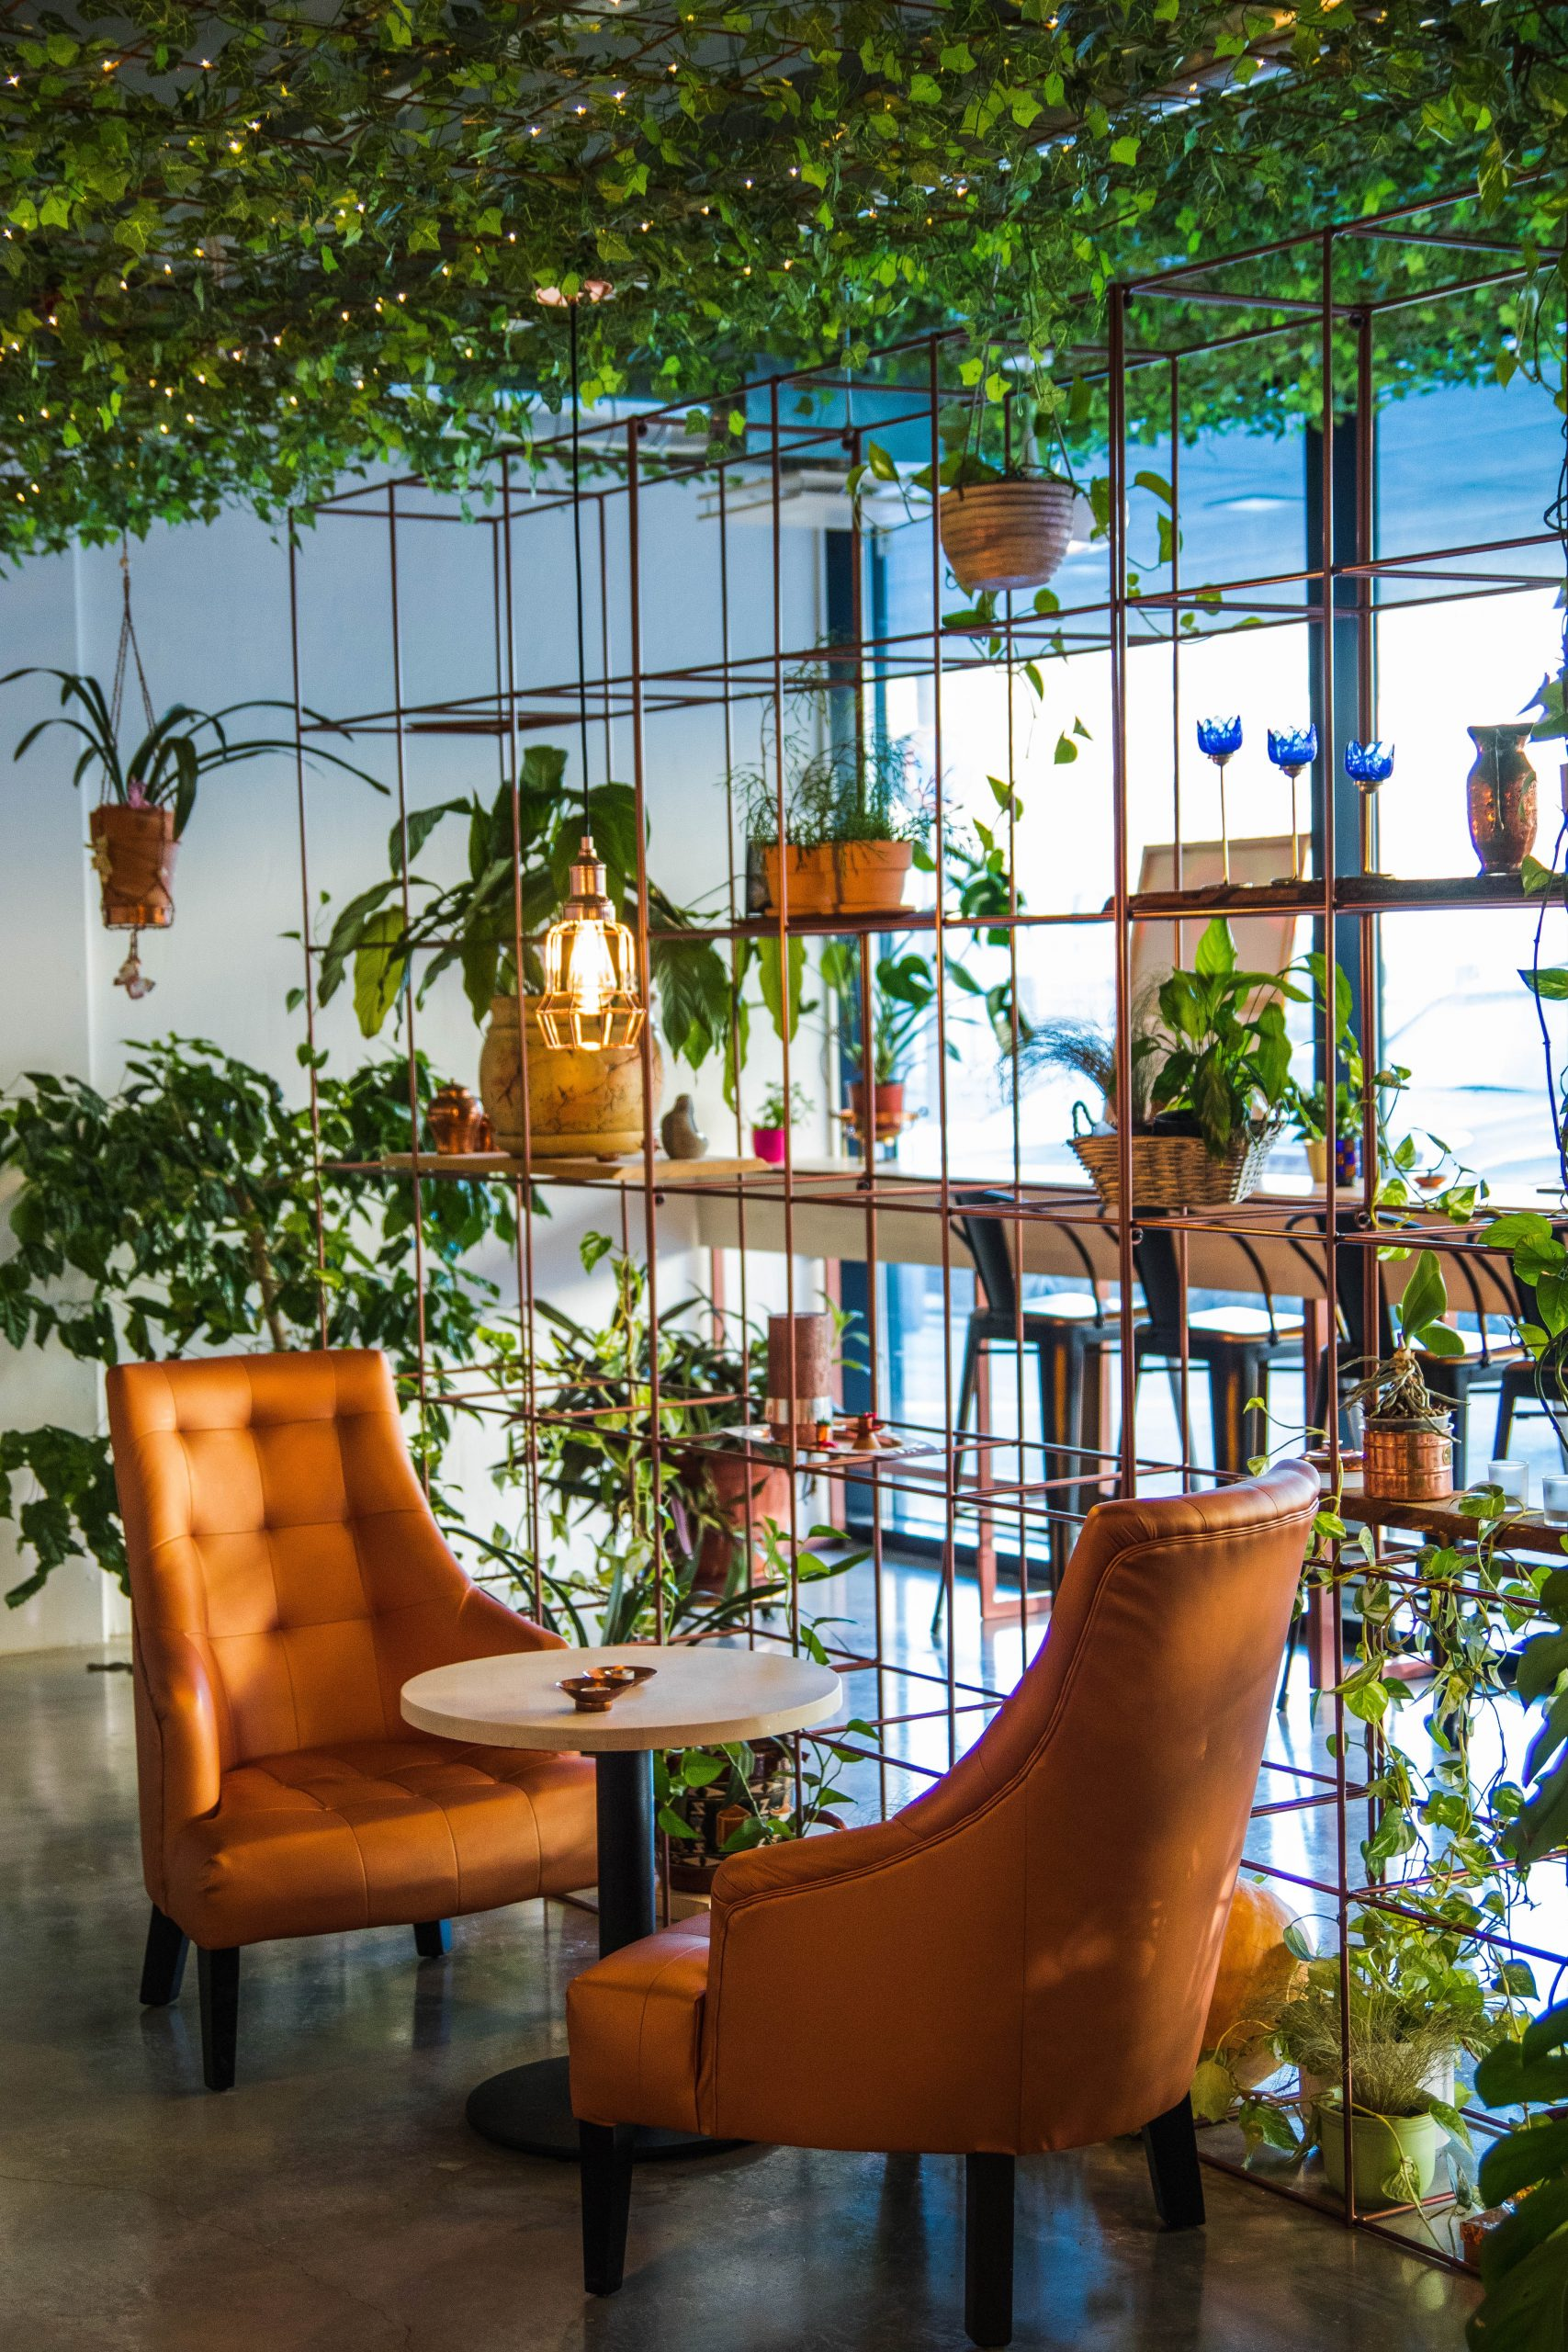 Sun room with plants on shelves, two chairs and a small table; What's In Your Dream Garden